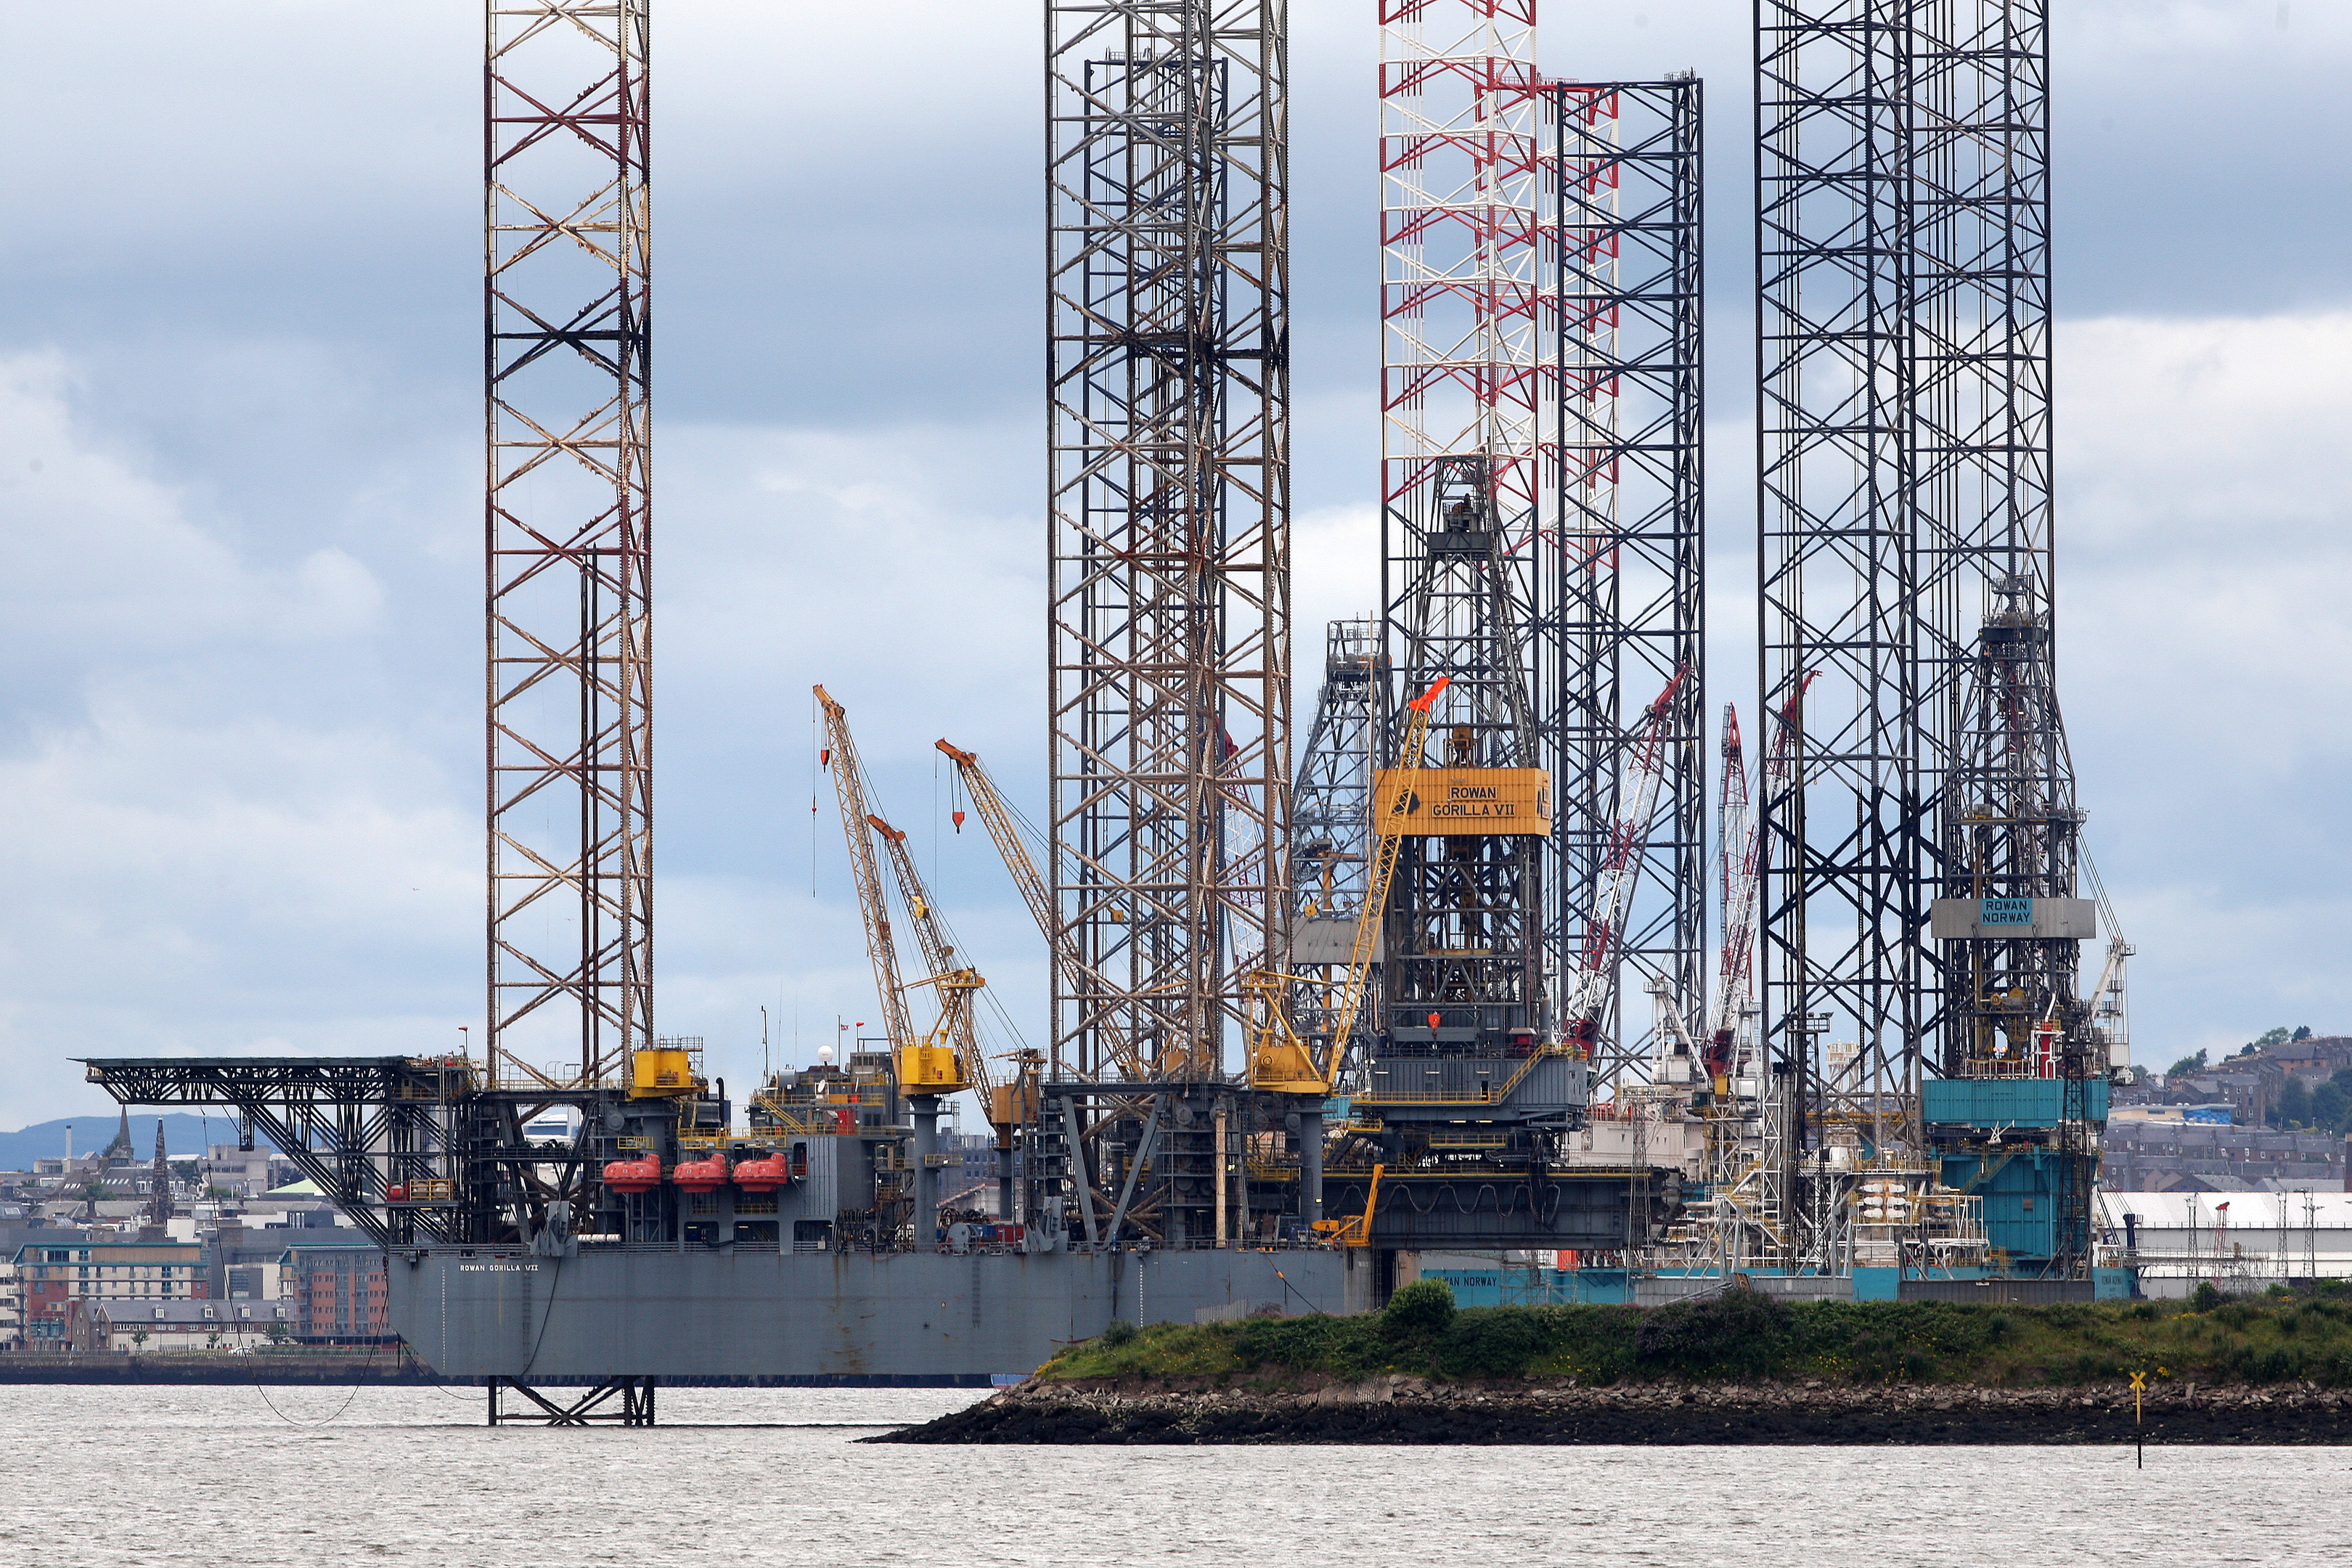 Oil rigs berthed in Dundee.